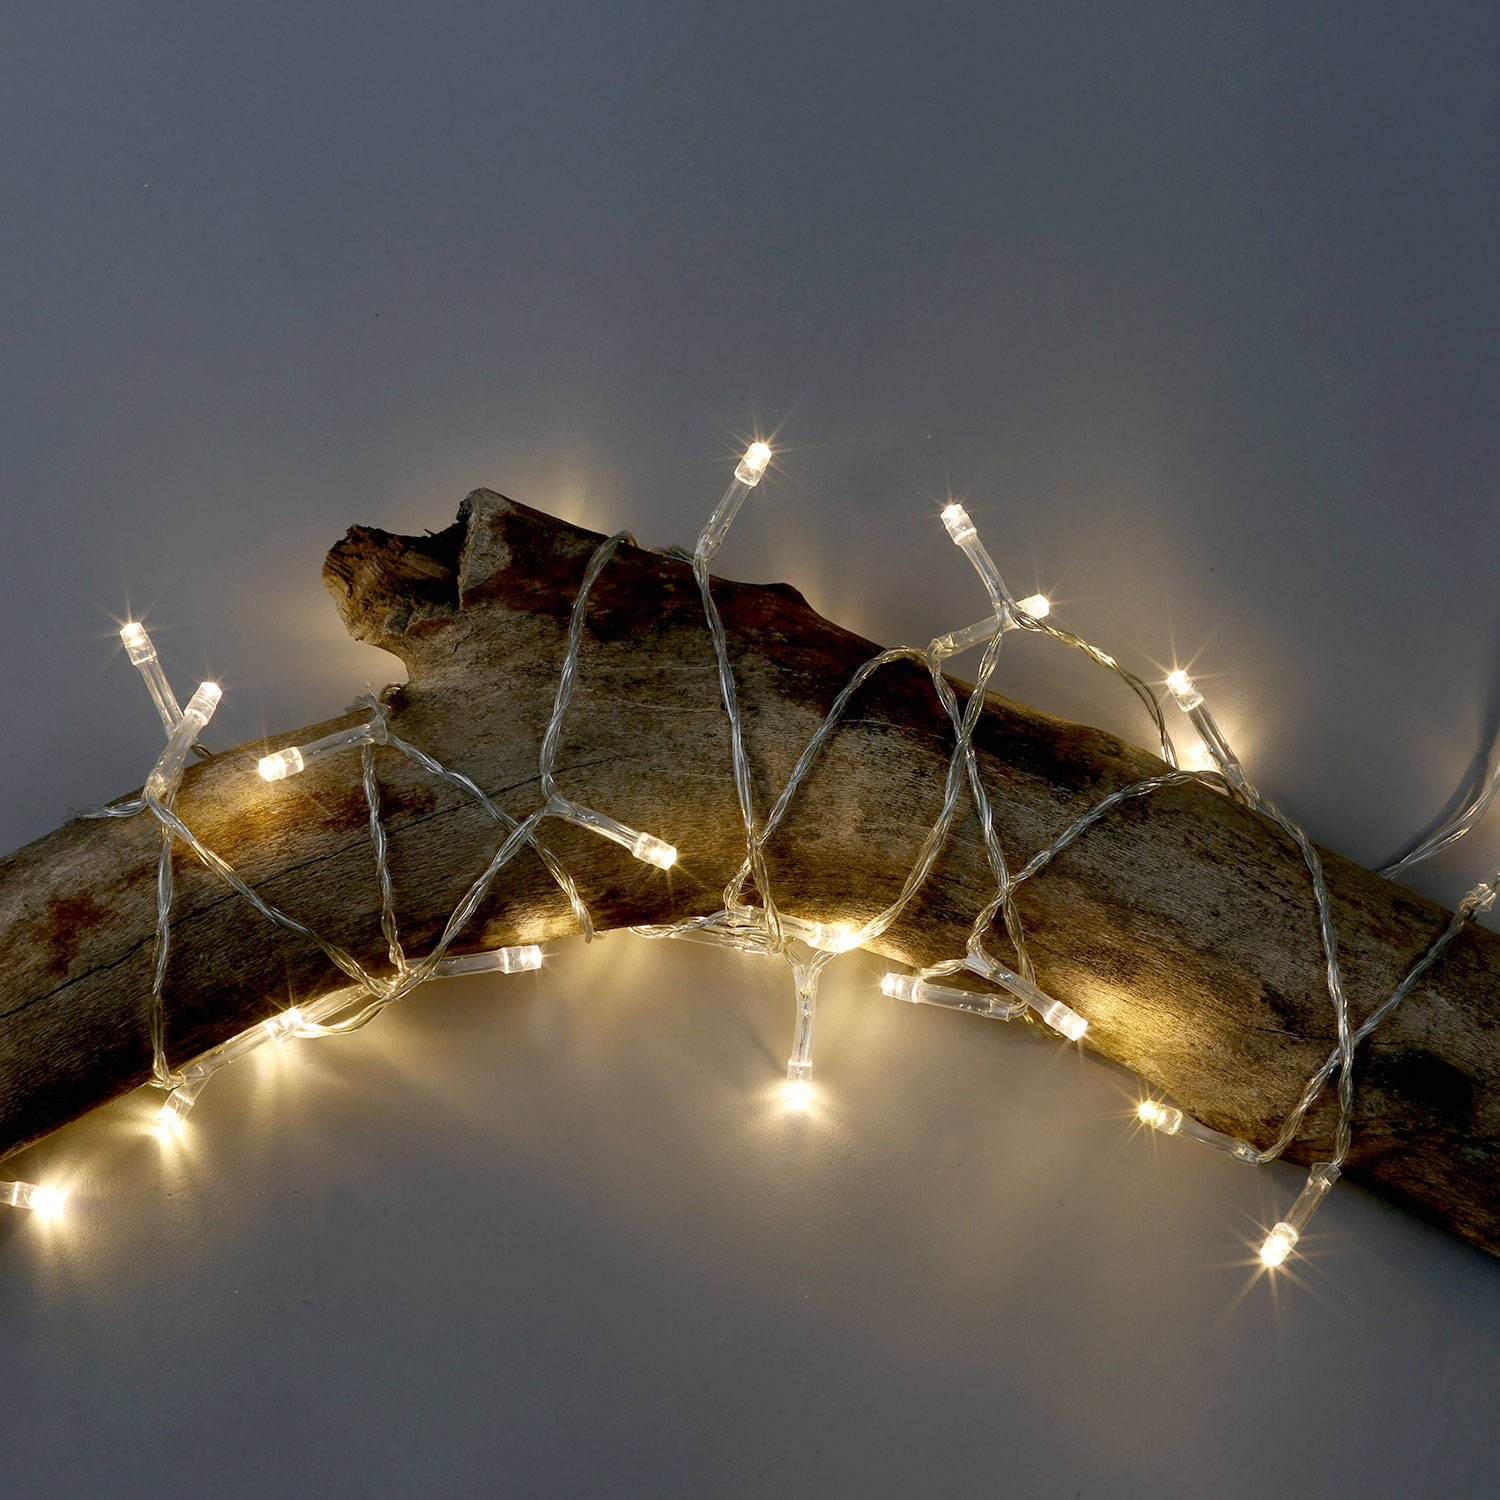 3 Pack Battery String Lights, 30 Warm White LEDs, 11 Ft. Strands, Batteries Included, Value Set by LampLust (Image #2)